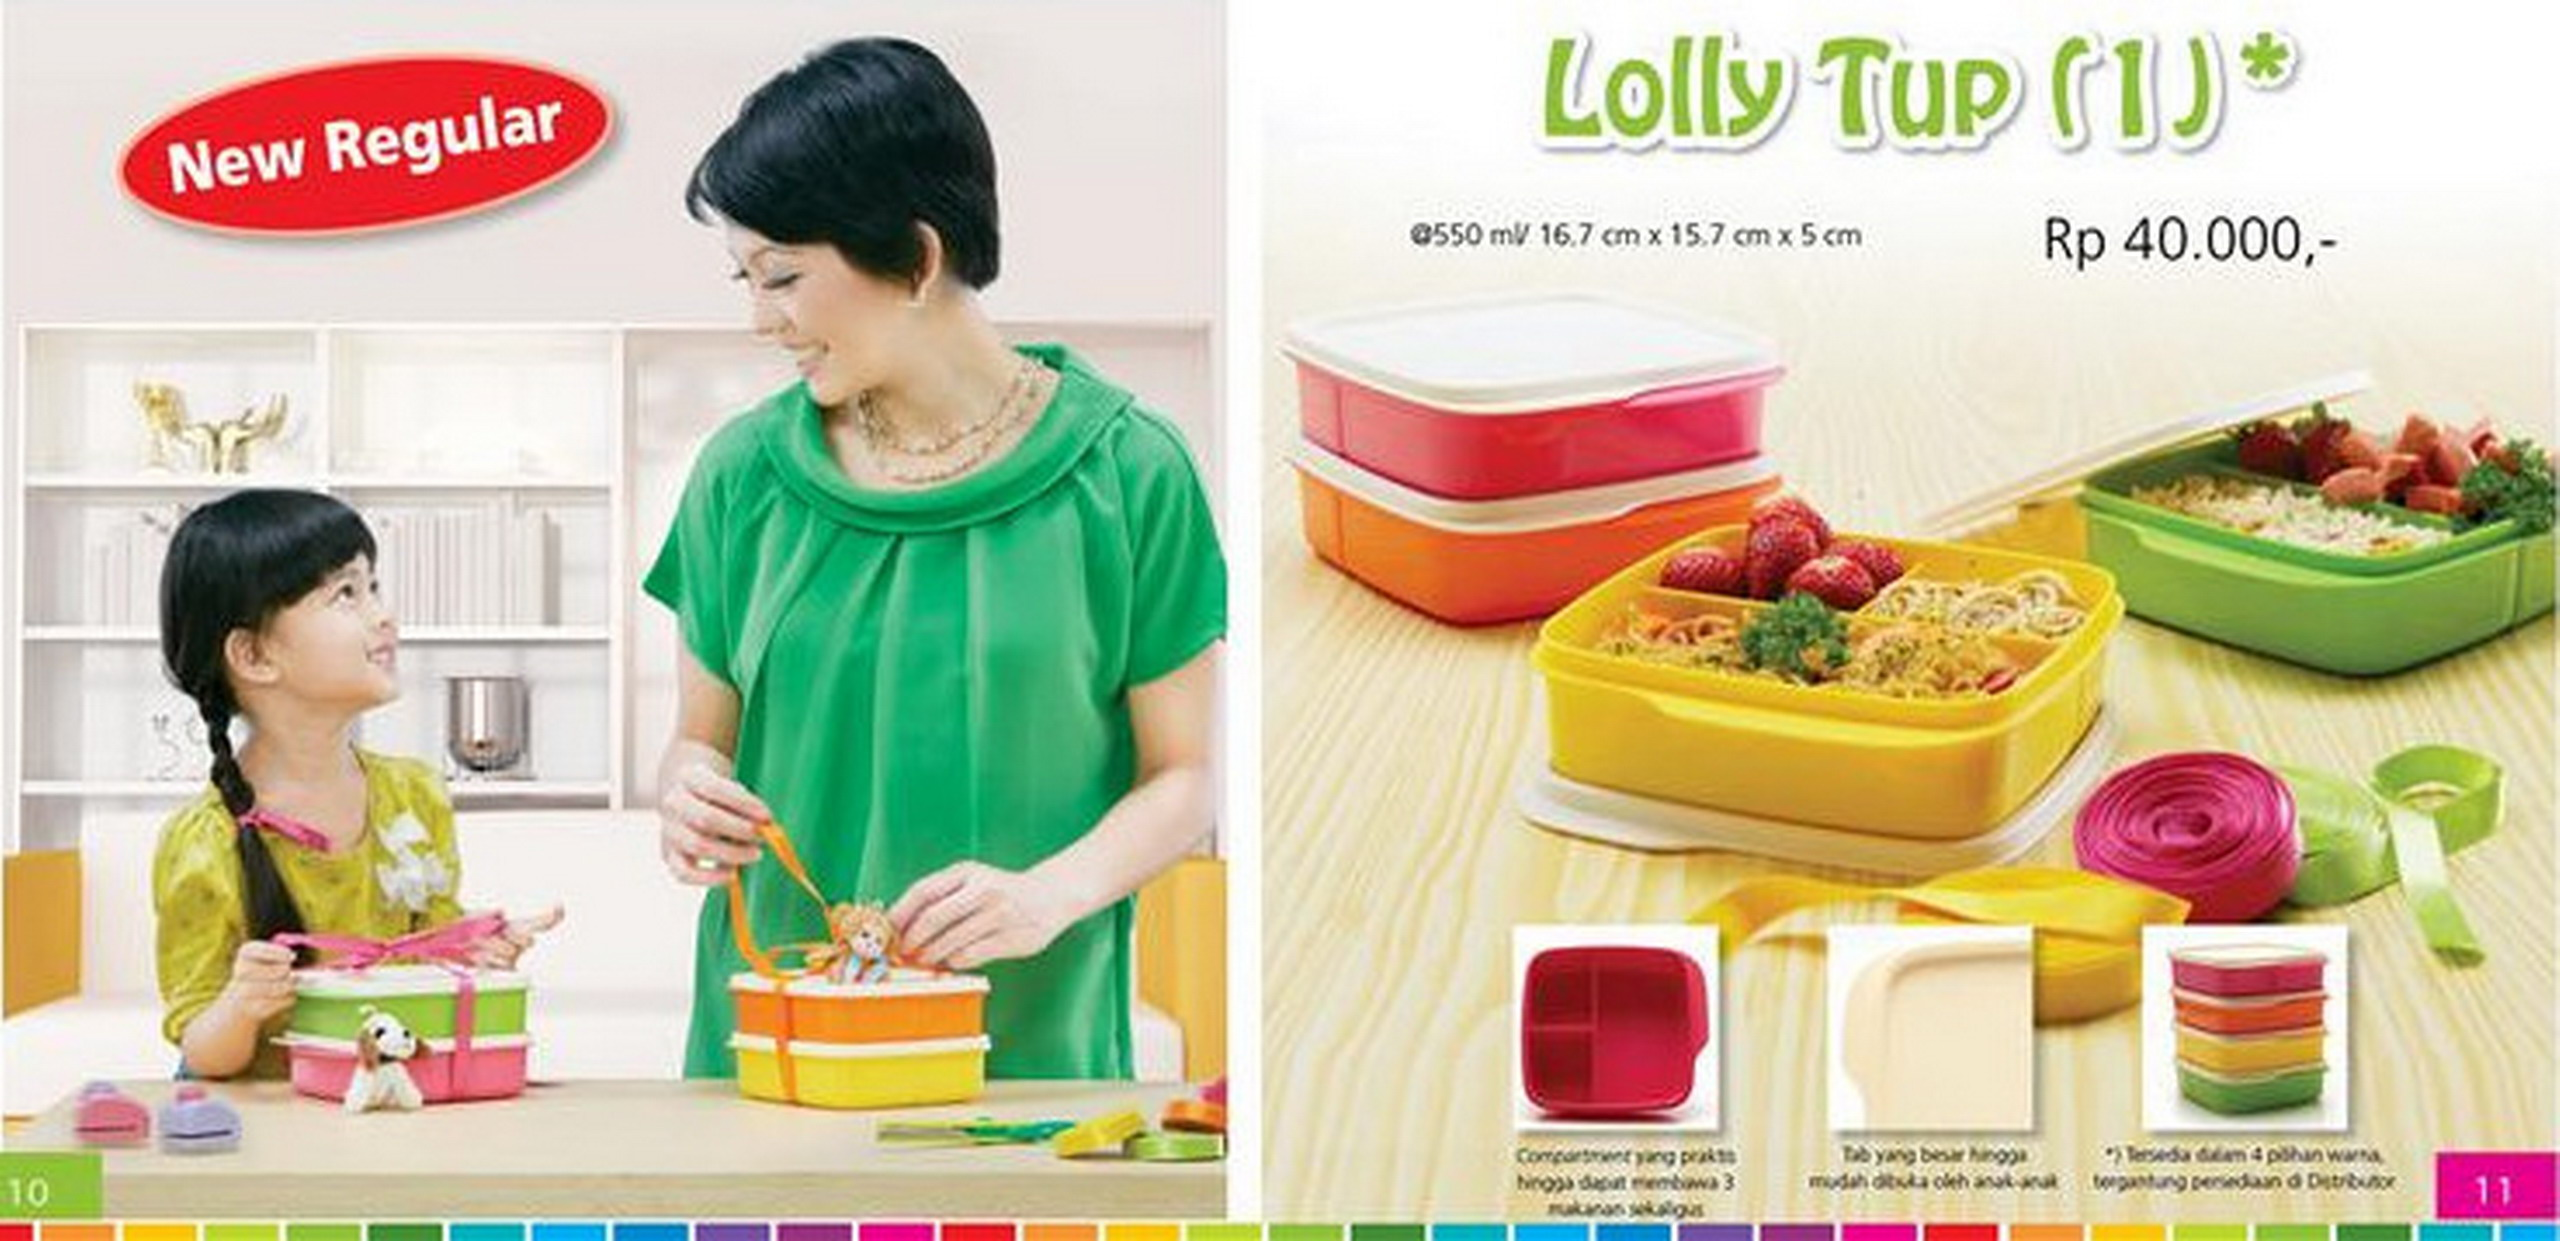 http://freetupperware.files.wordpress.com/2013/08/tupperware-lolly-tup-1.jpg